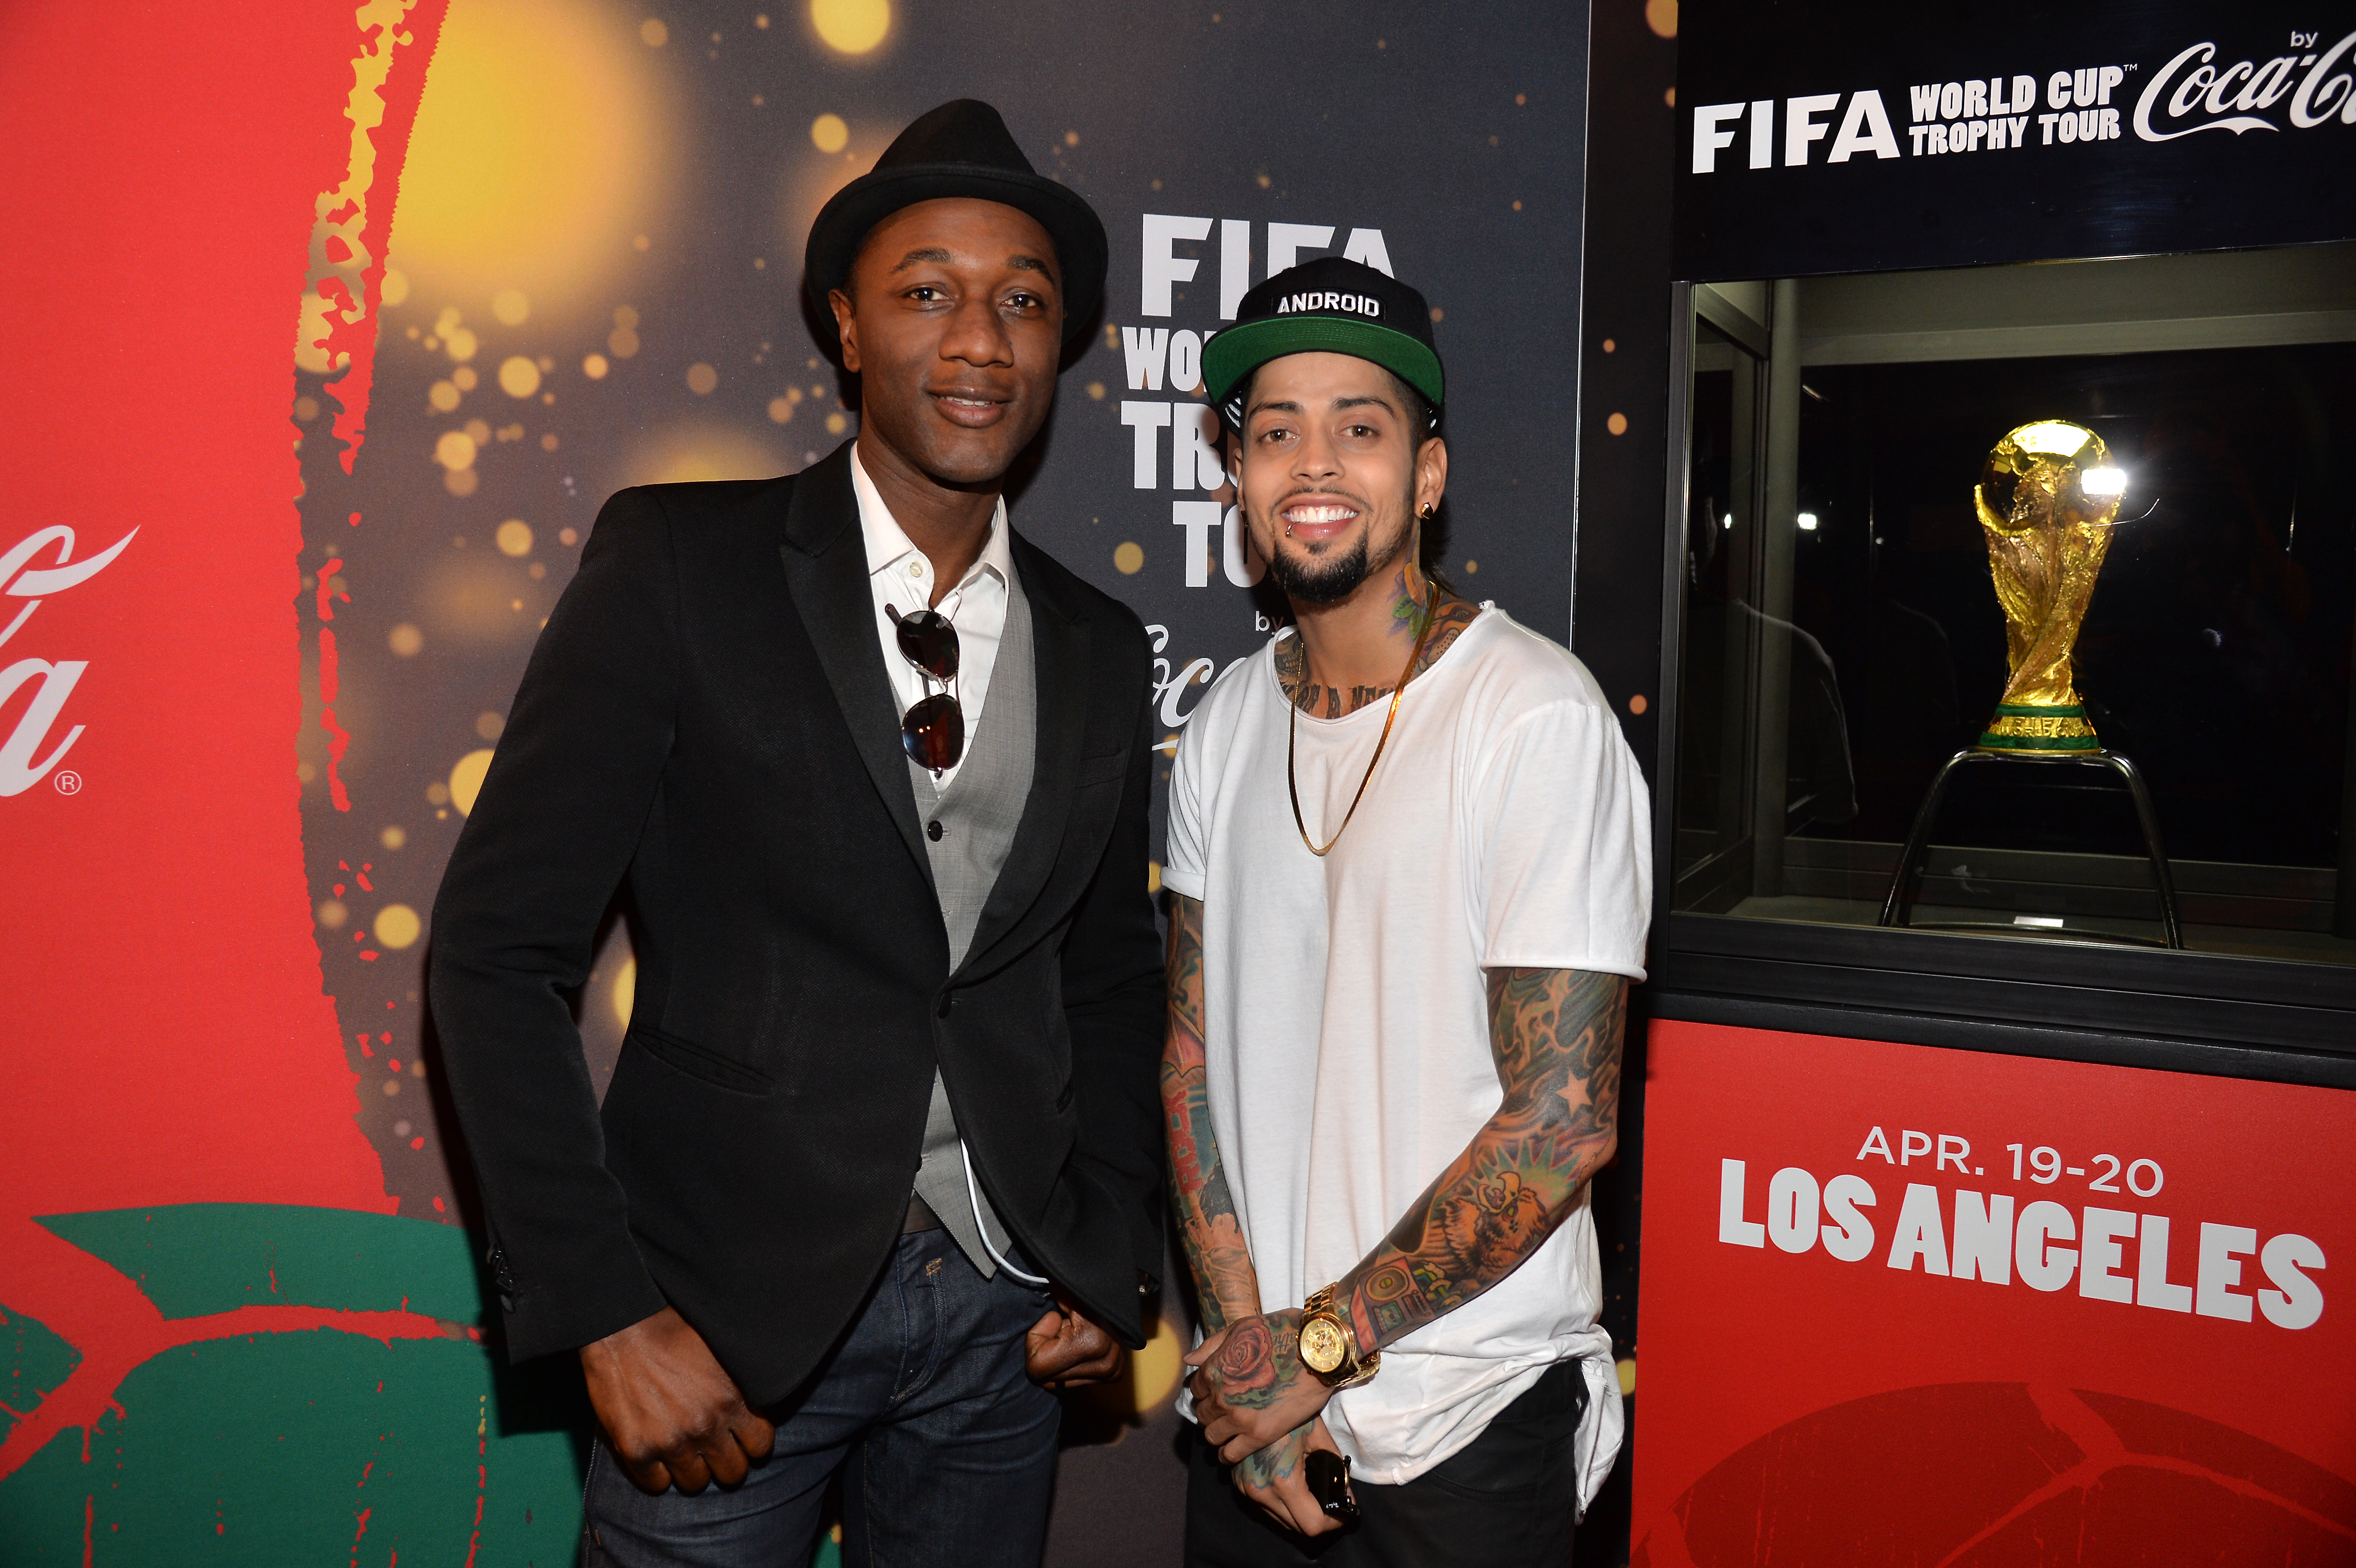 Coca-Cola Releases 'The World is Ours' by Aloe Blacc X David